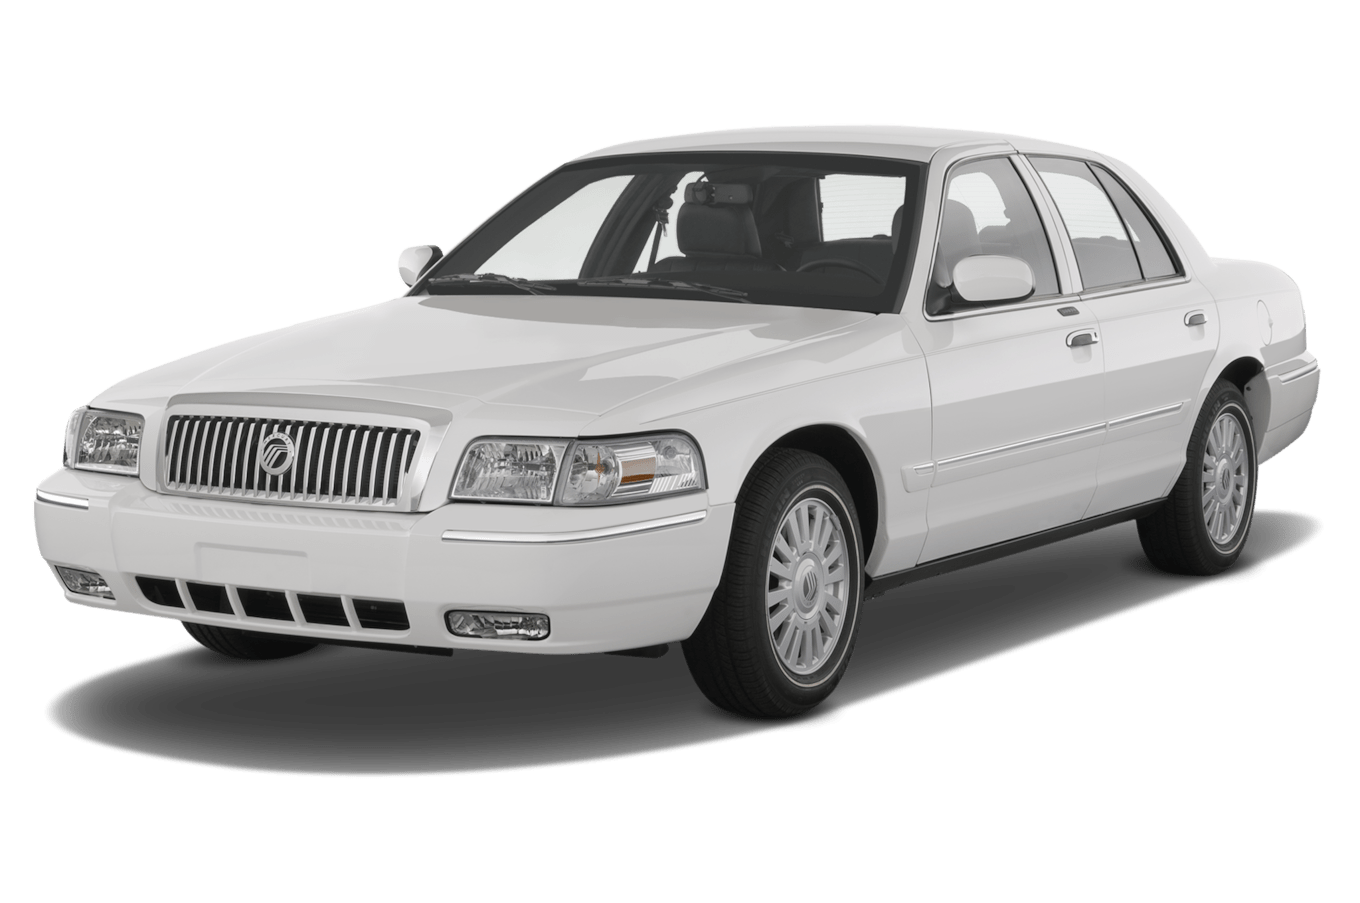 Hg Auto 2010 Mercury Grand Marquis Reviews And Rating | Motor Trend